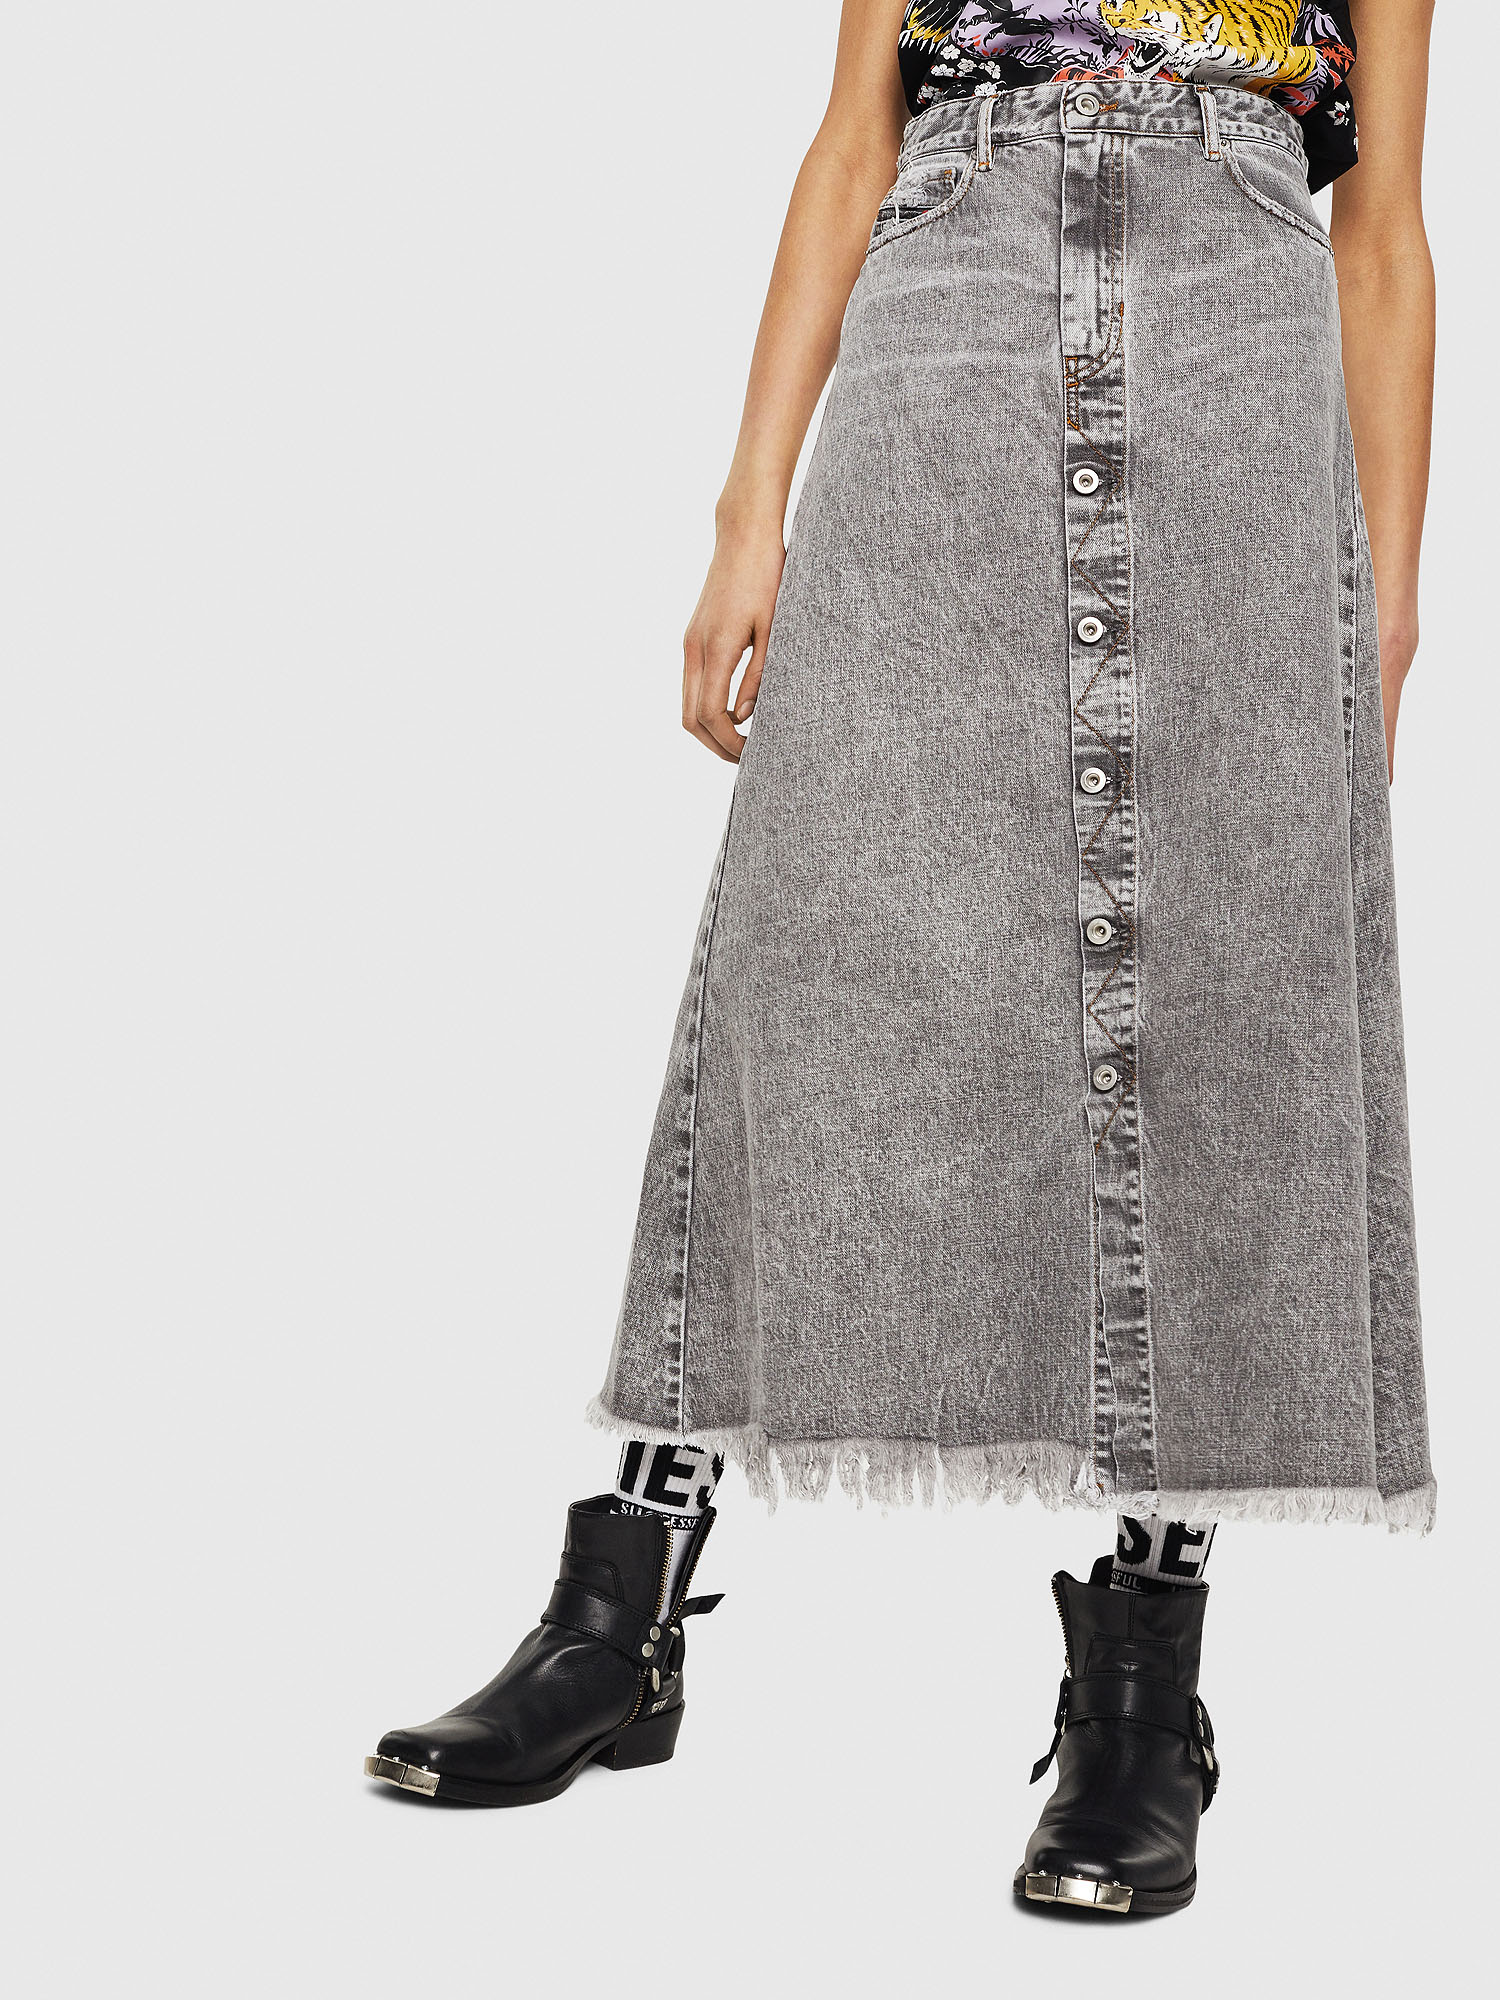 Diesel - DE-MARGY,  - Skirts - Image 1